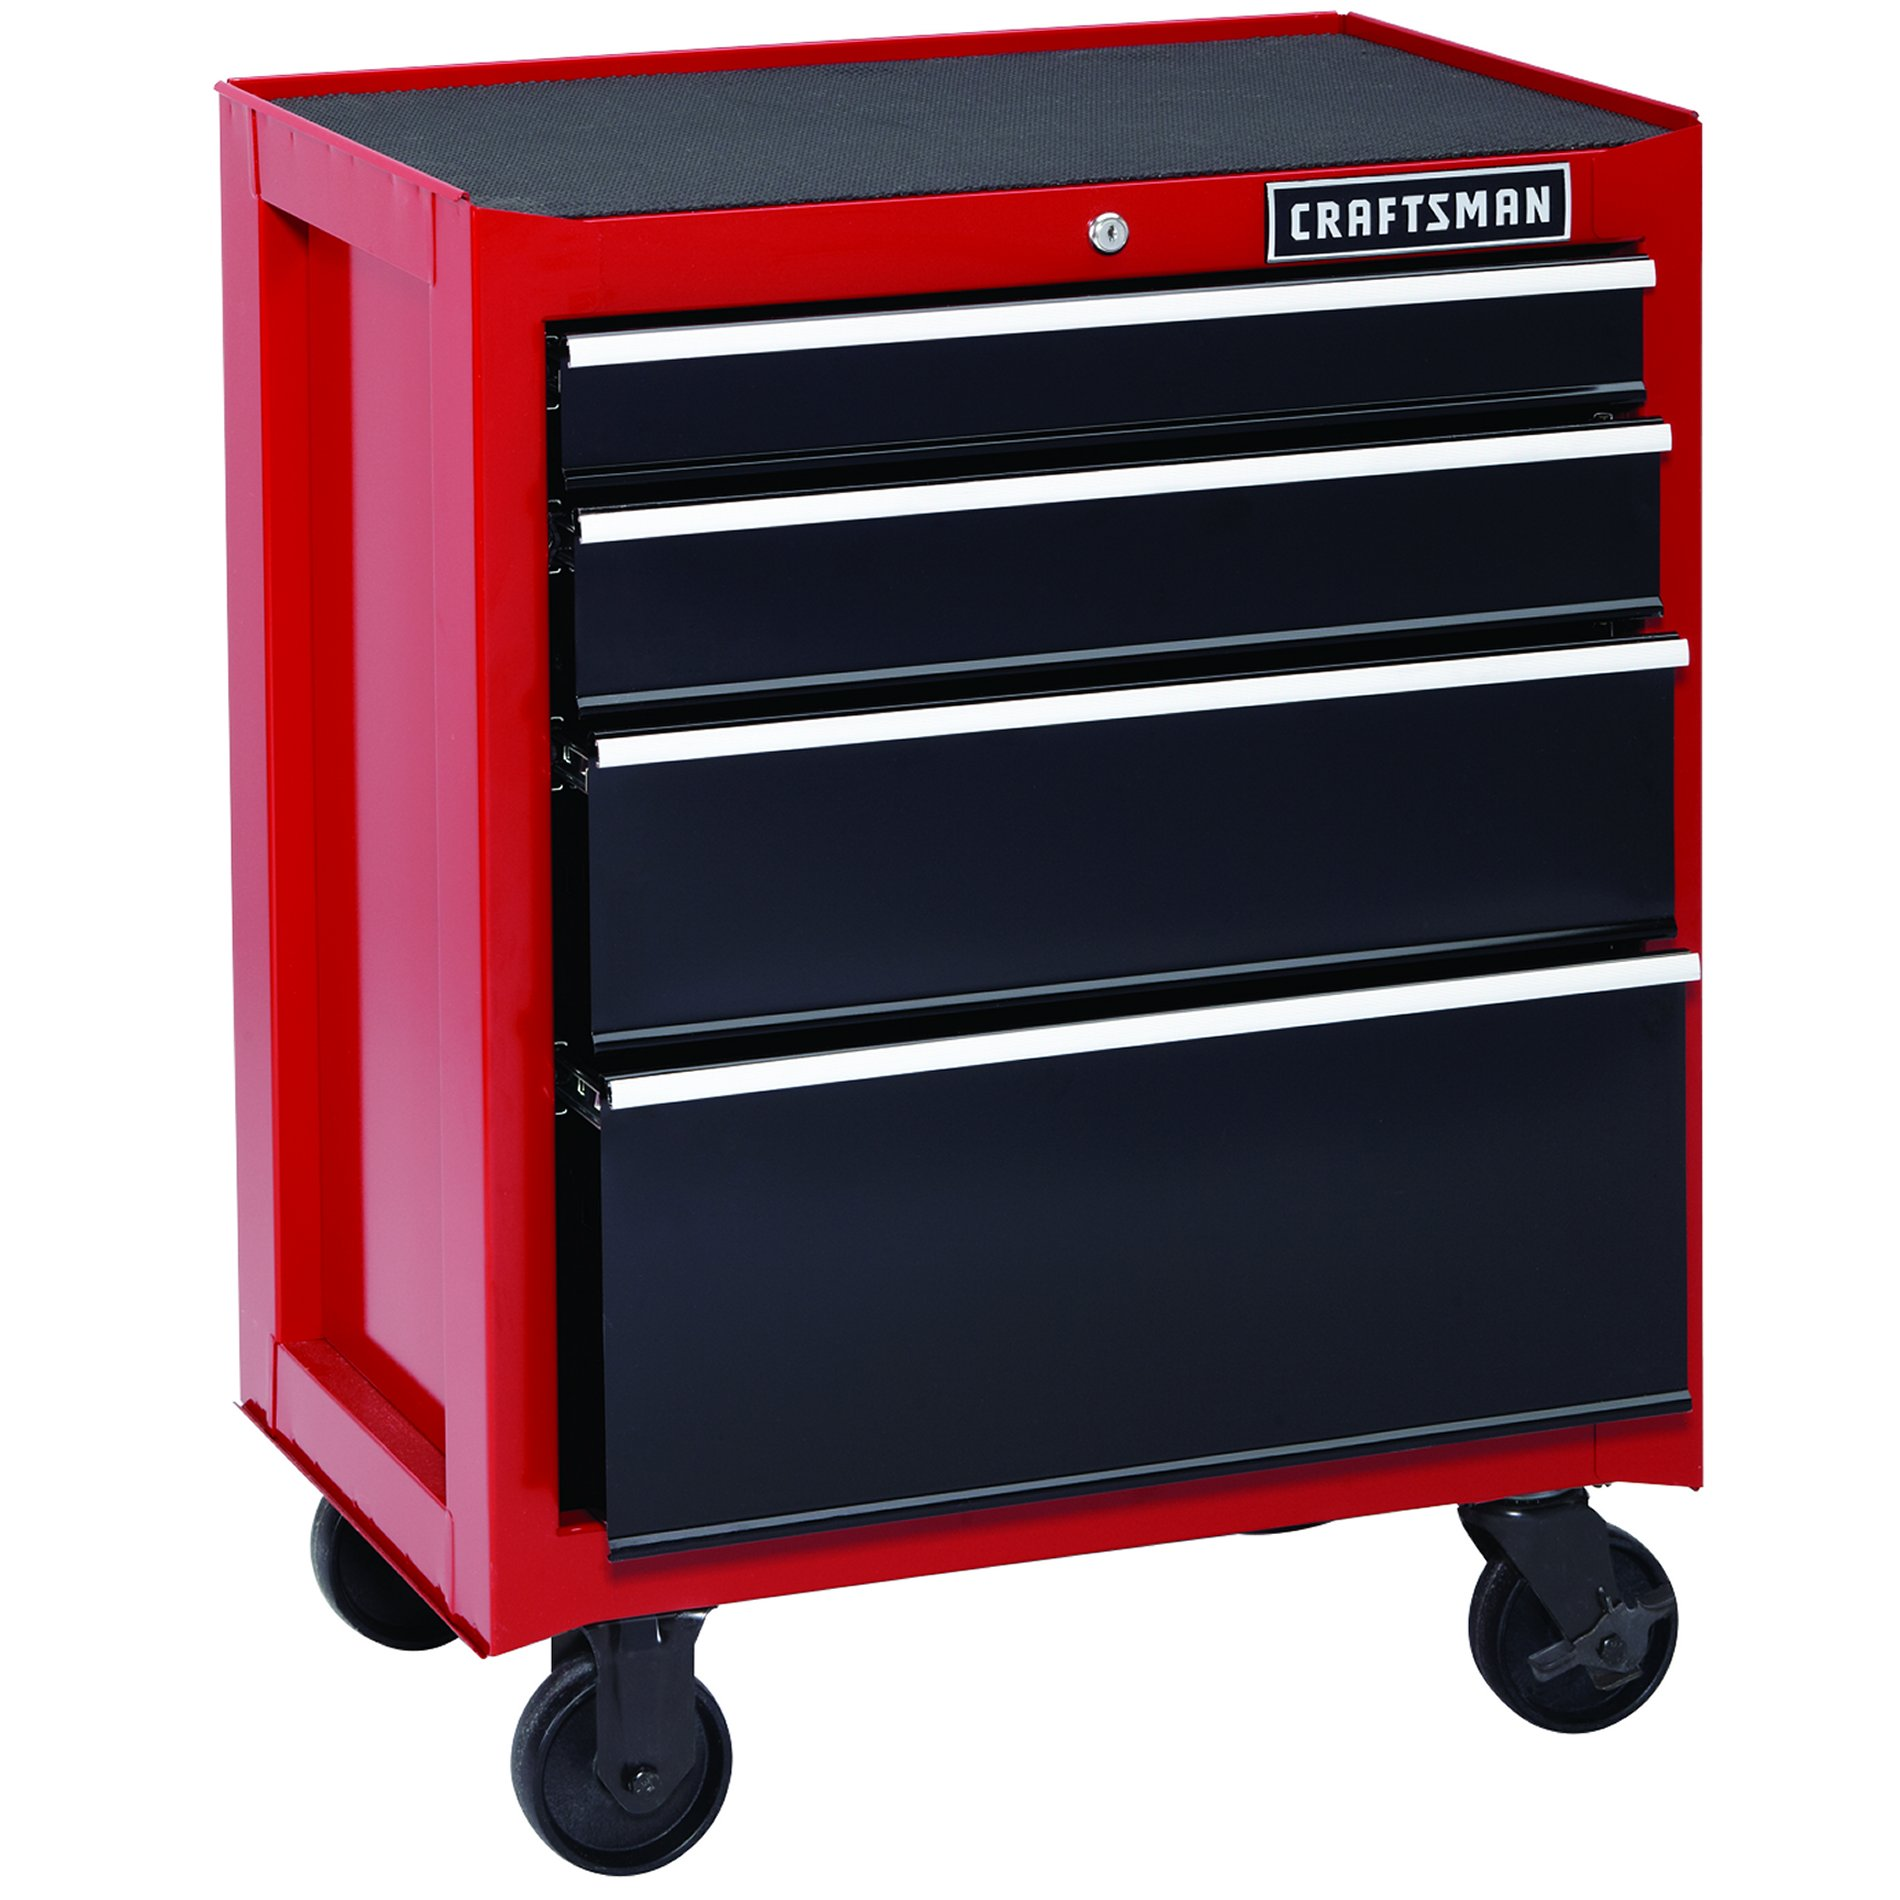 26 34 Deep Drawer Rolling Cabinet Works Alone Or Togetherrough Tough And With A Whopping 8 202 Cubic Inches Of Storage Spa Tool Chest Tool Storage Craftsman